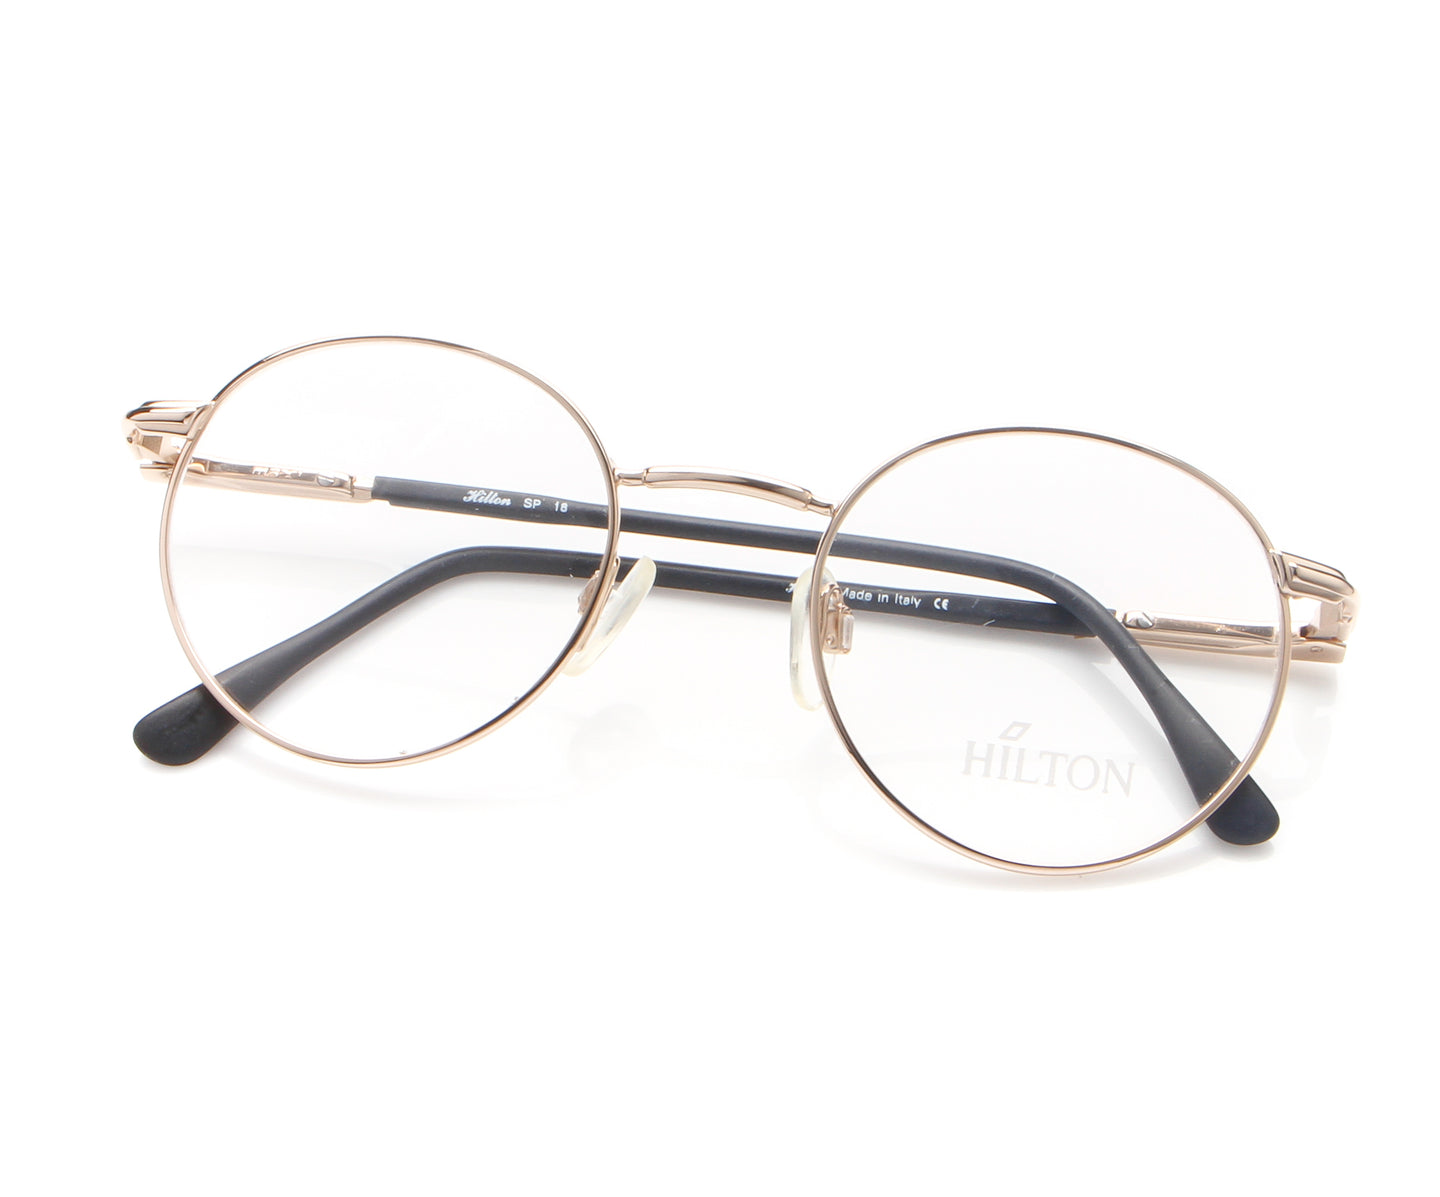 Vintage Hilton SP 18 Thumb, Hilton , glasses frames, eyeglasses online, eyeglass frames, mens glasses, womens glasses, buy glasses online, designer eyeglasses, vintage sunglasses, retro sunglasses, vintage glasses, sunglass, eyeglass, glasses, lens, vintage frames company, vf